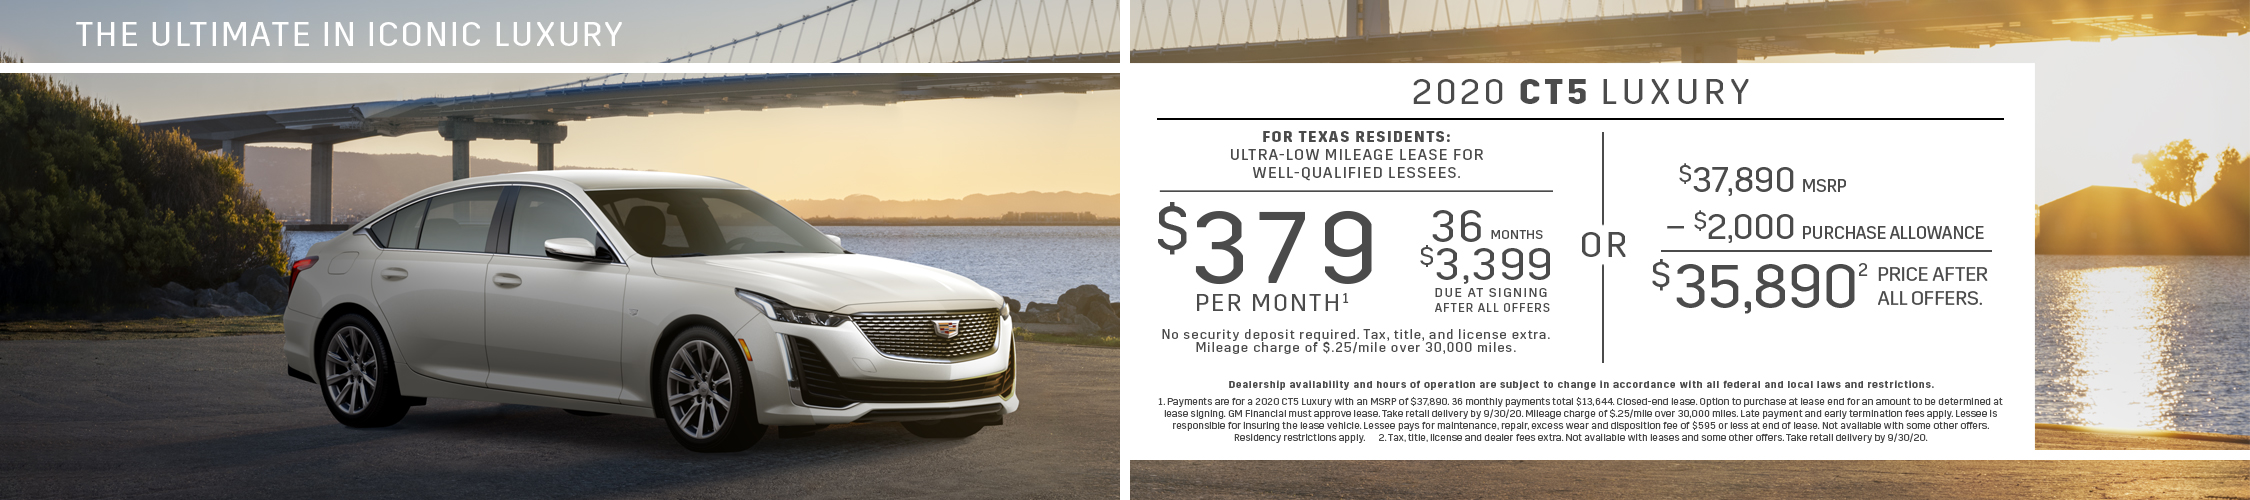 2020 CT5 Luxury: Lease Offer (Image) - 39a6ea